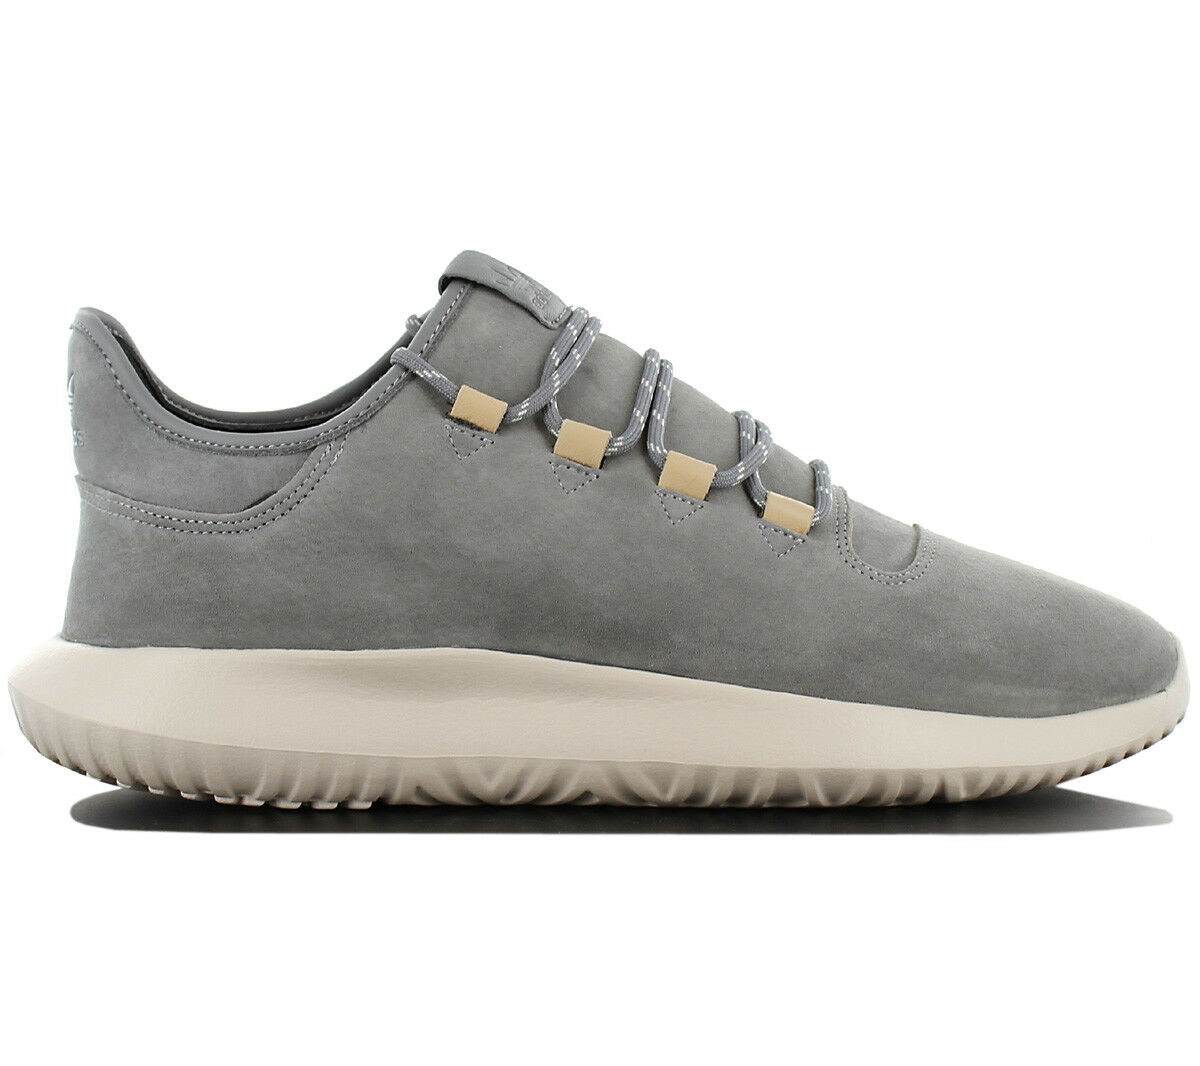 Adidas Originals Tubular Shadow Leather Turnschuhe Schuhe Schuhe Schuhe Leder Grau BY3569 NEU 93c1b7